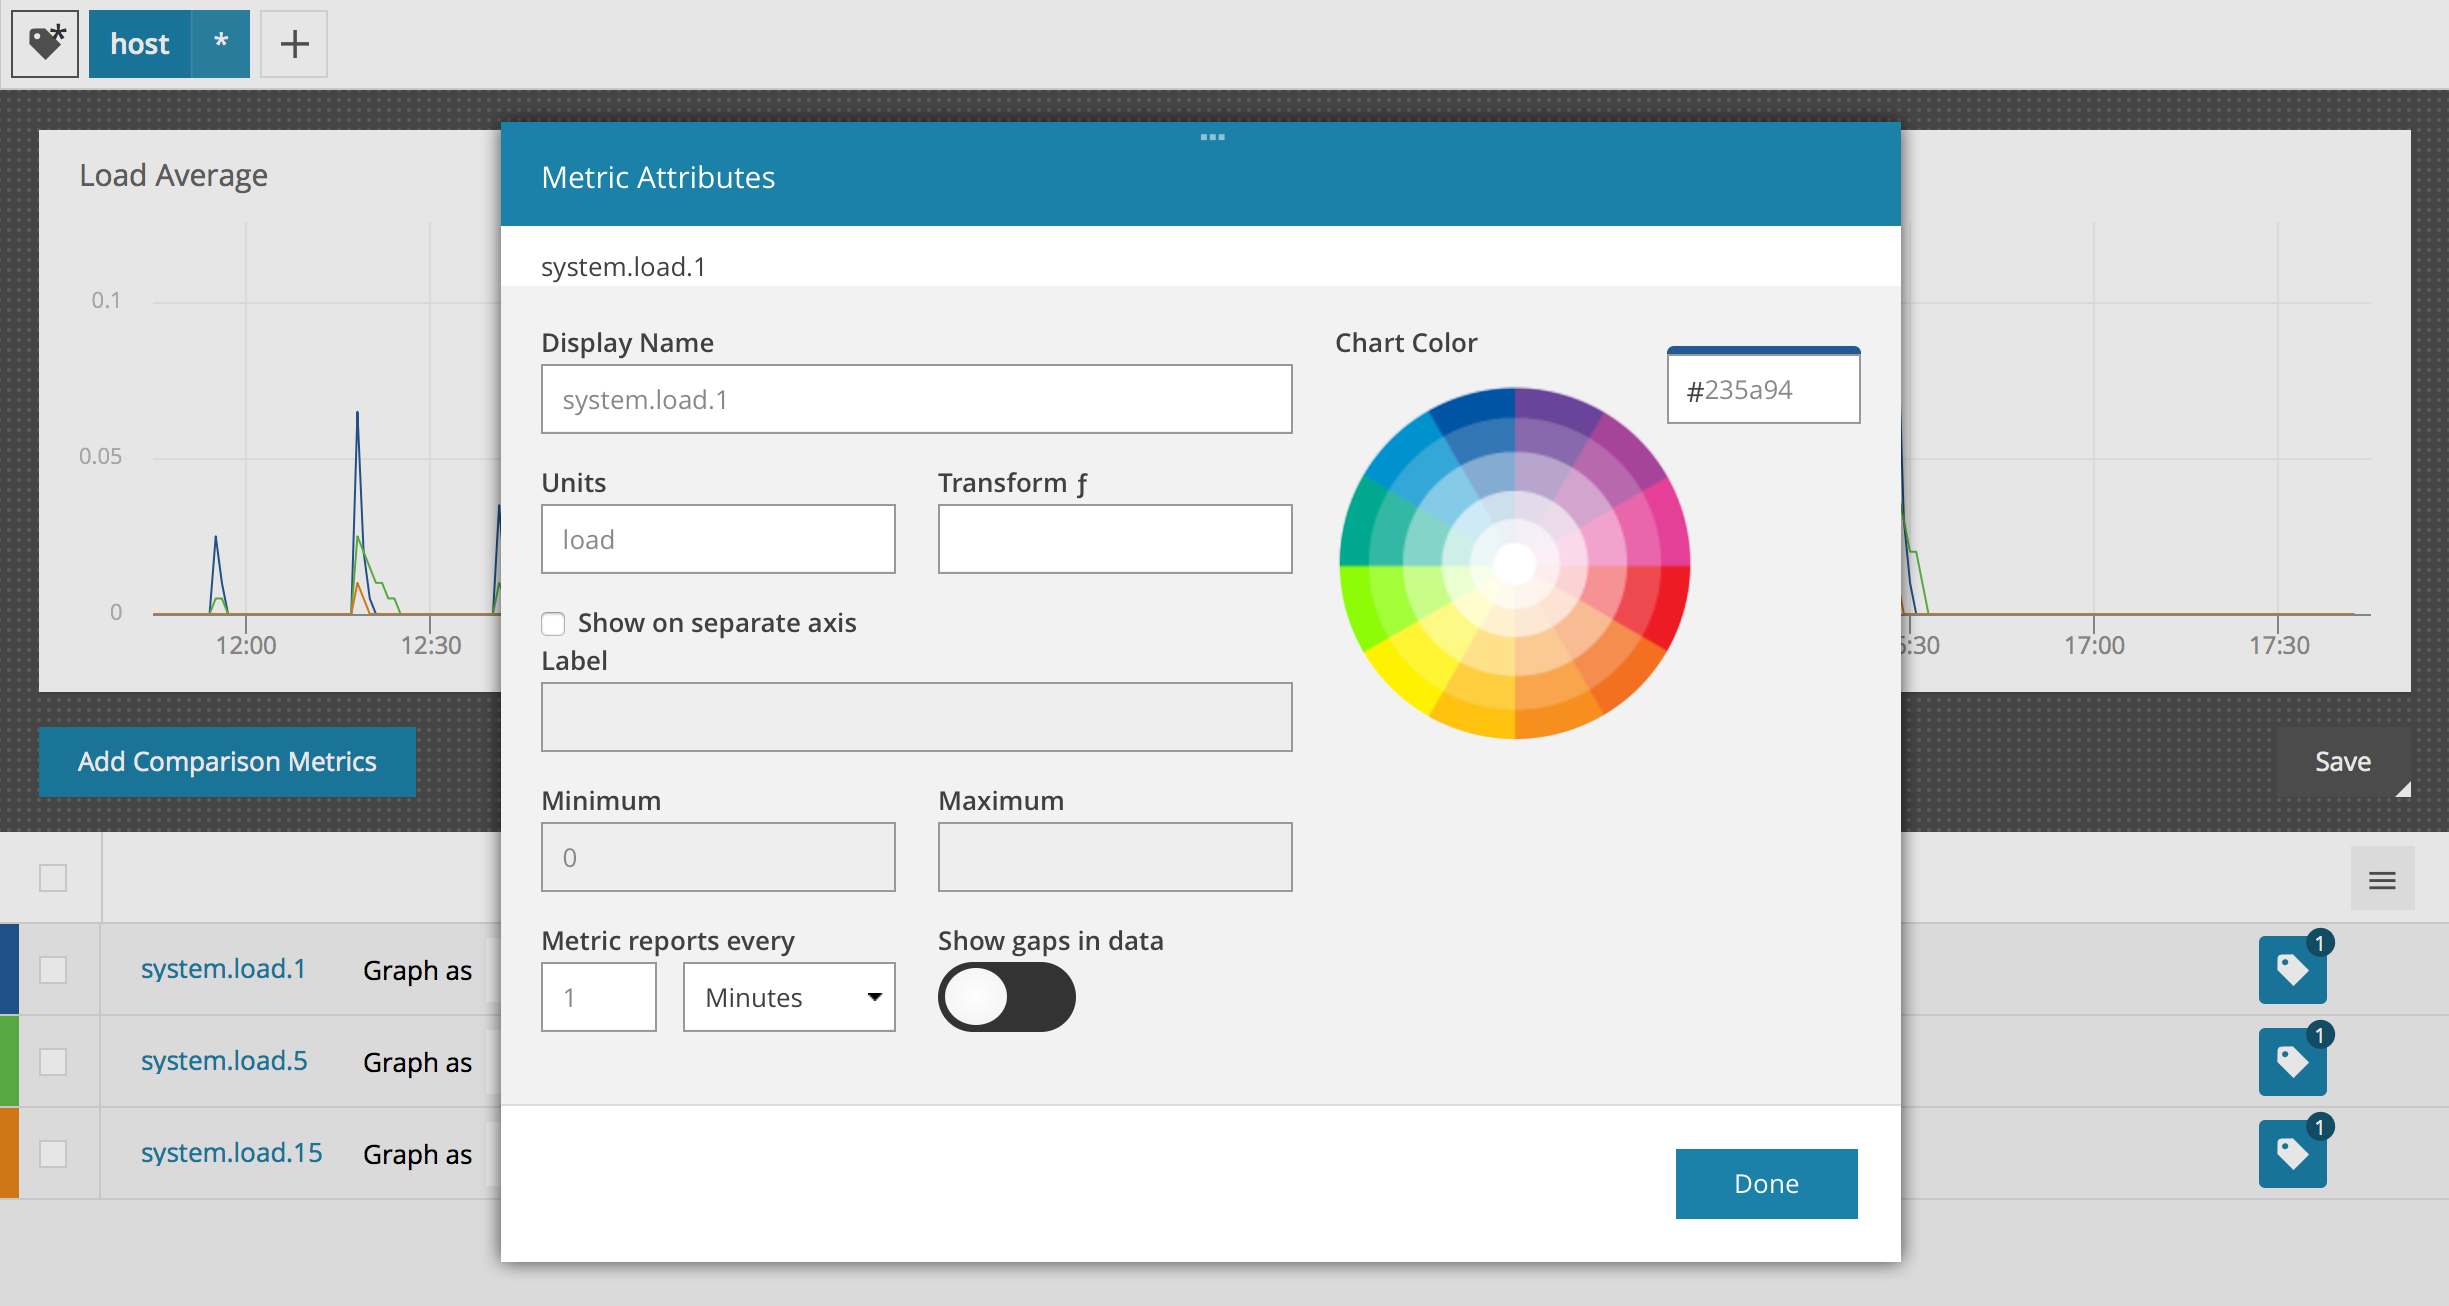 How to change the colors on a metric — AppOptics Knowledge Base